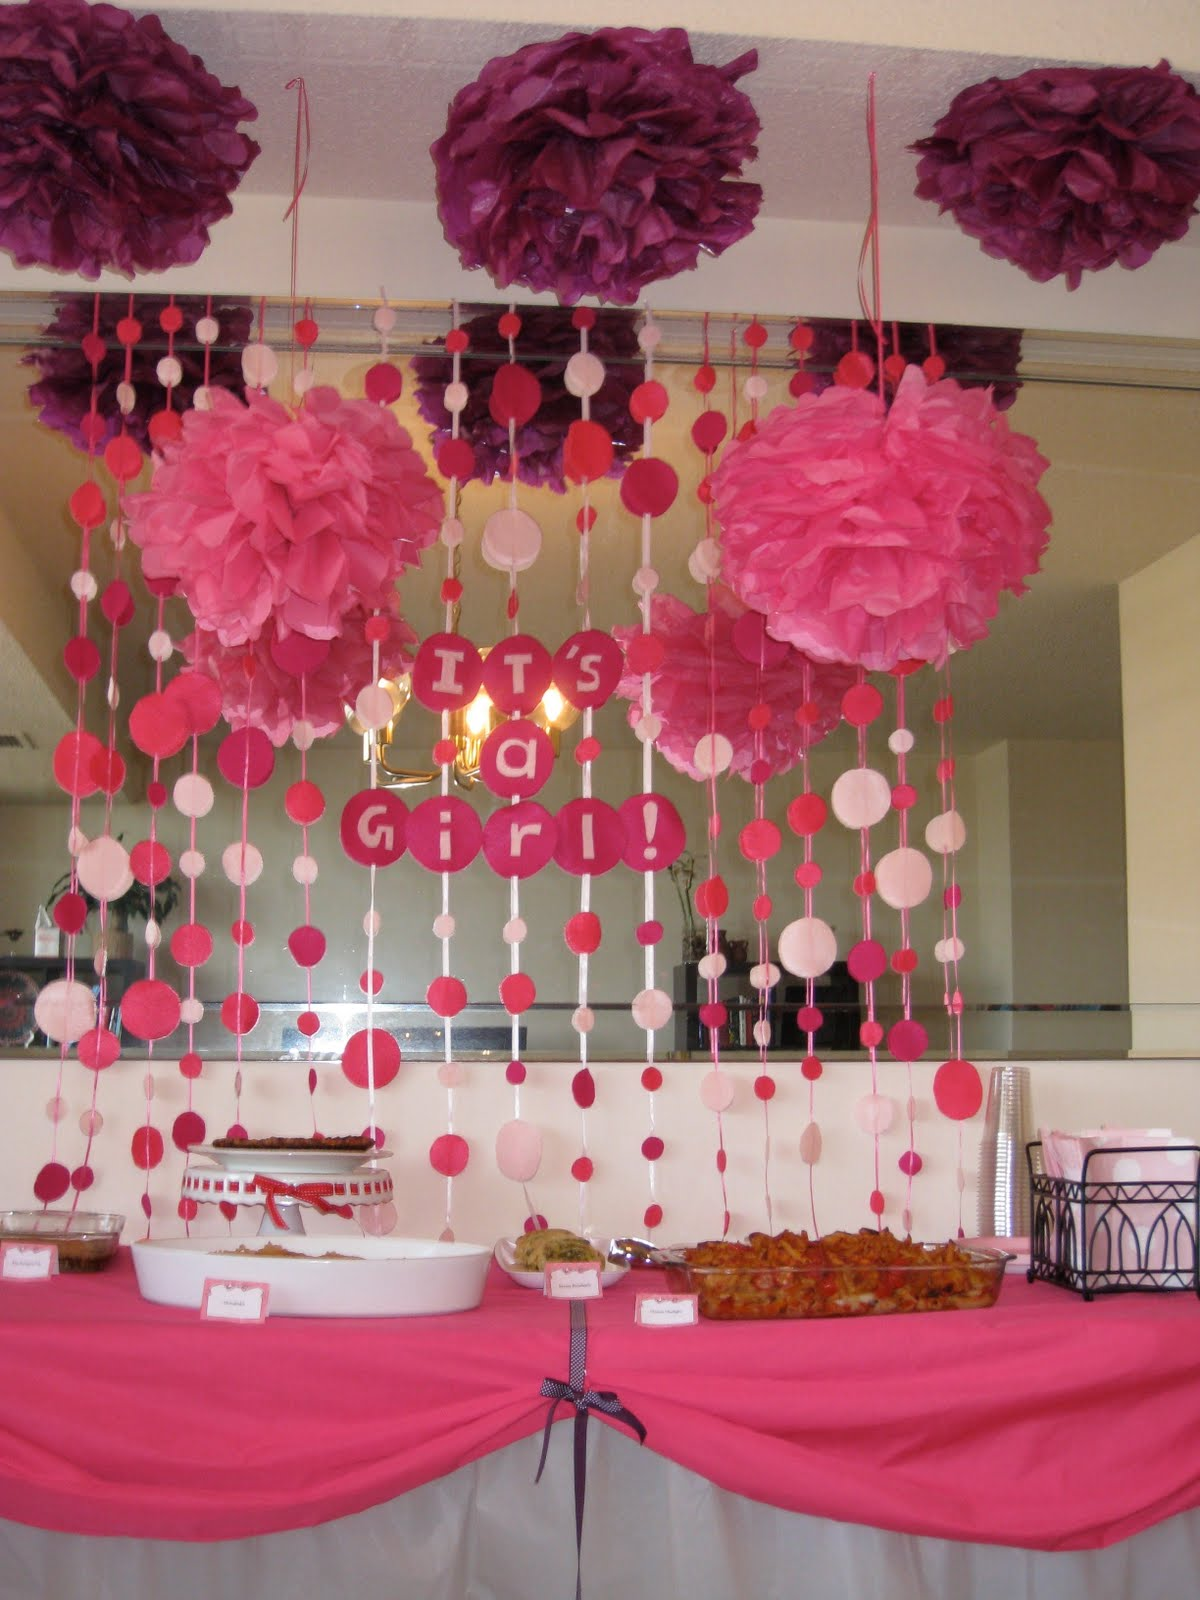 Baby shower food ideas baby shower ideas for a girl for Baby shower decoration ideas for girl